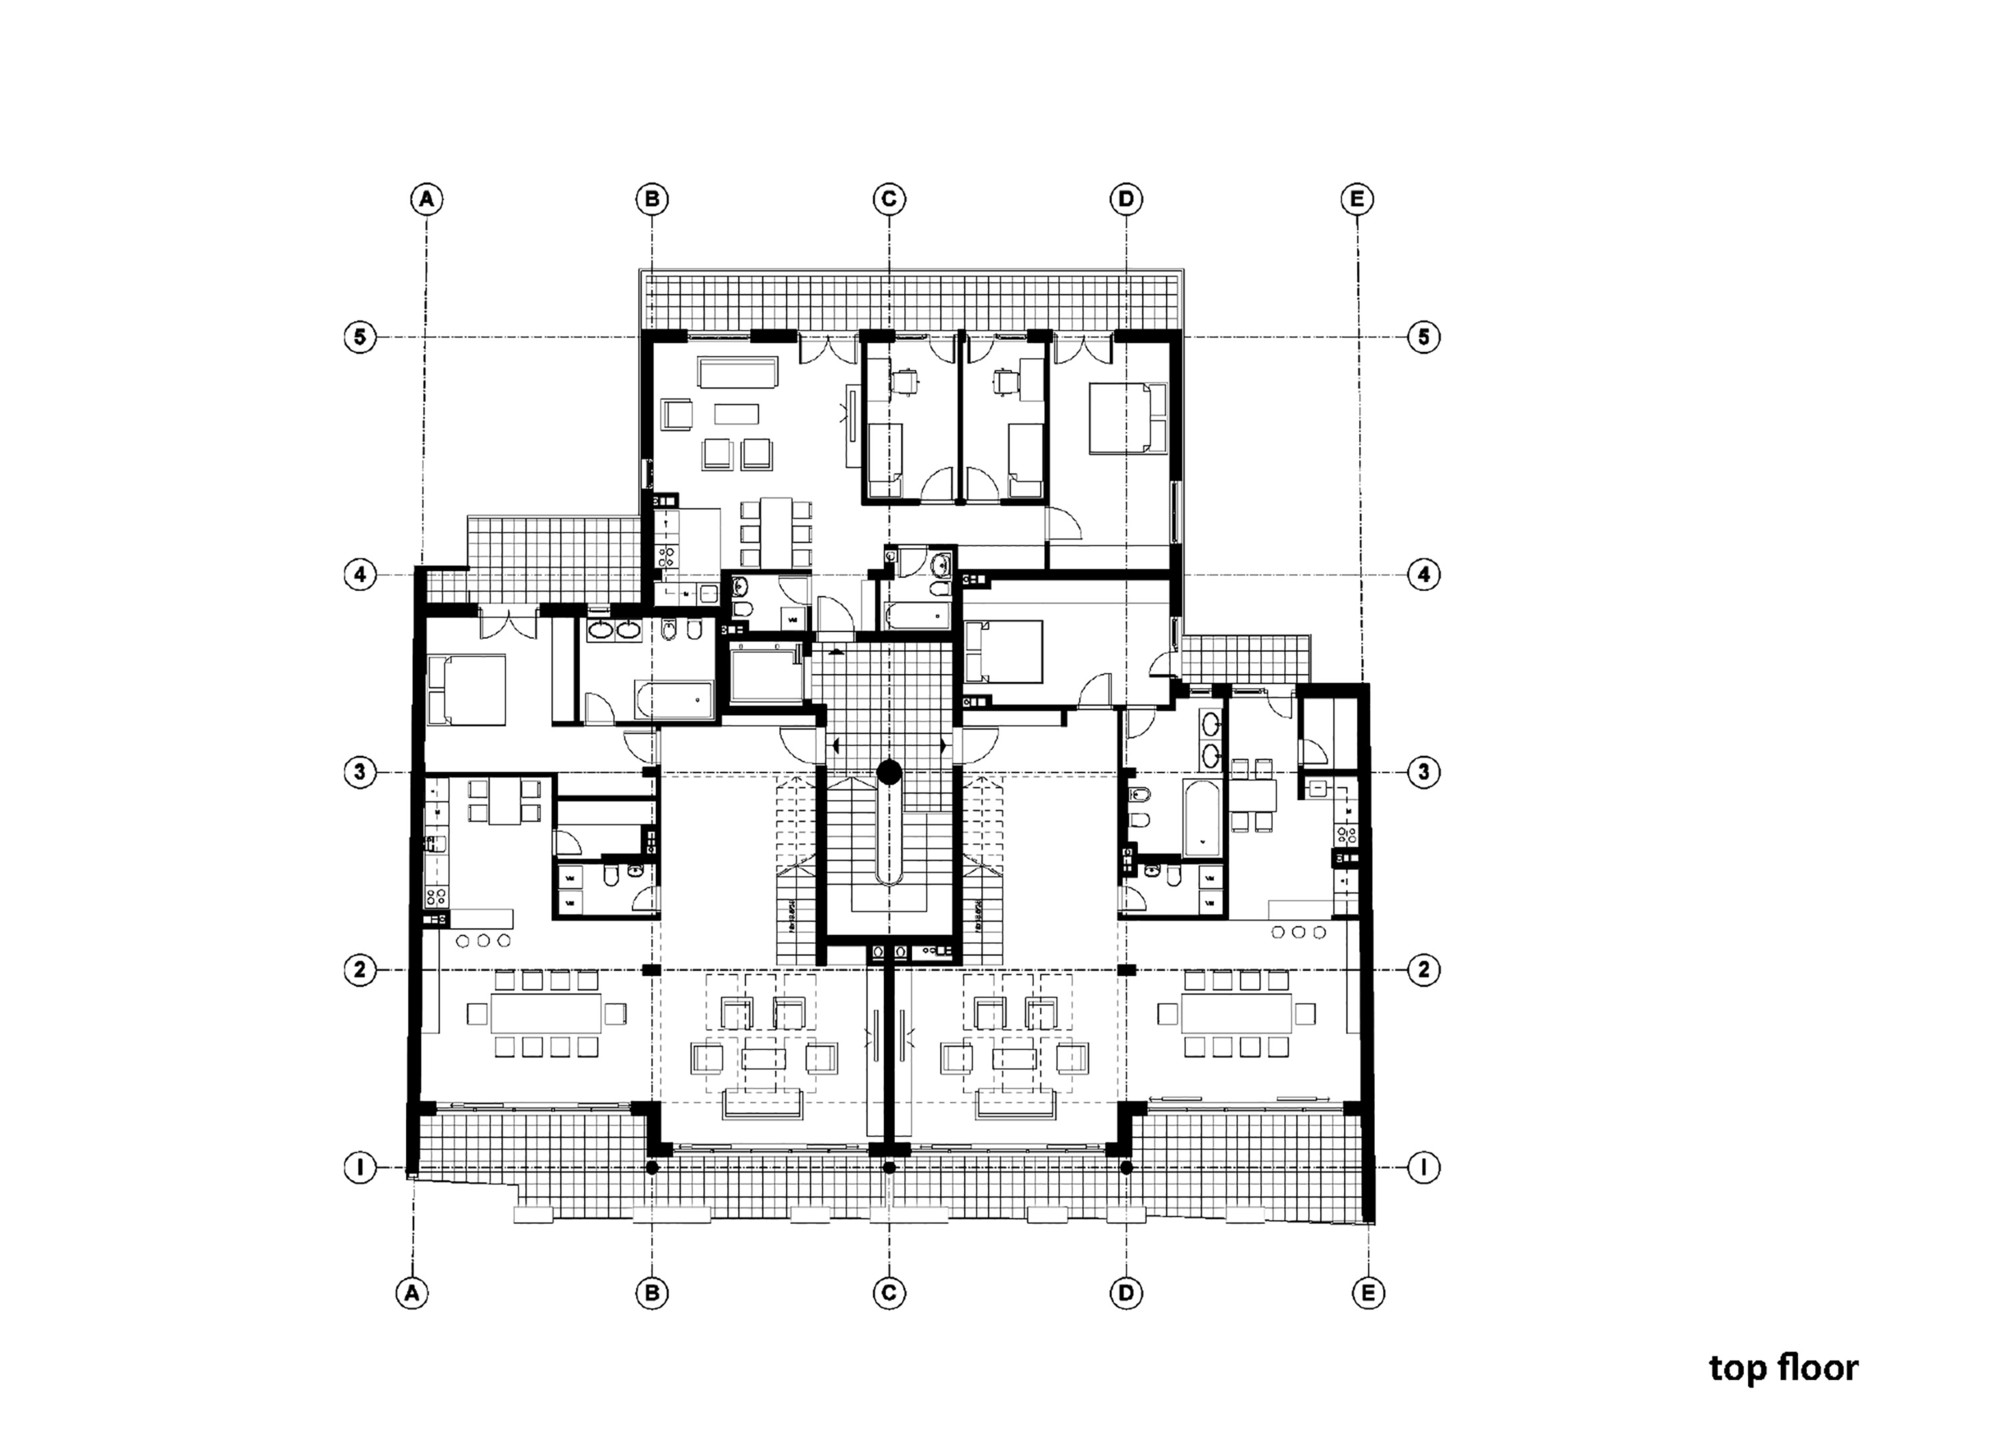 Ground floor plan of residential building for Residential blueprints